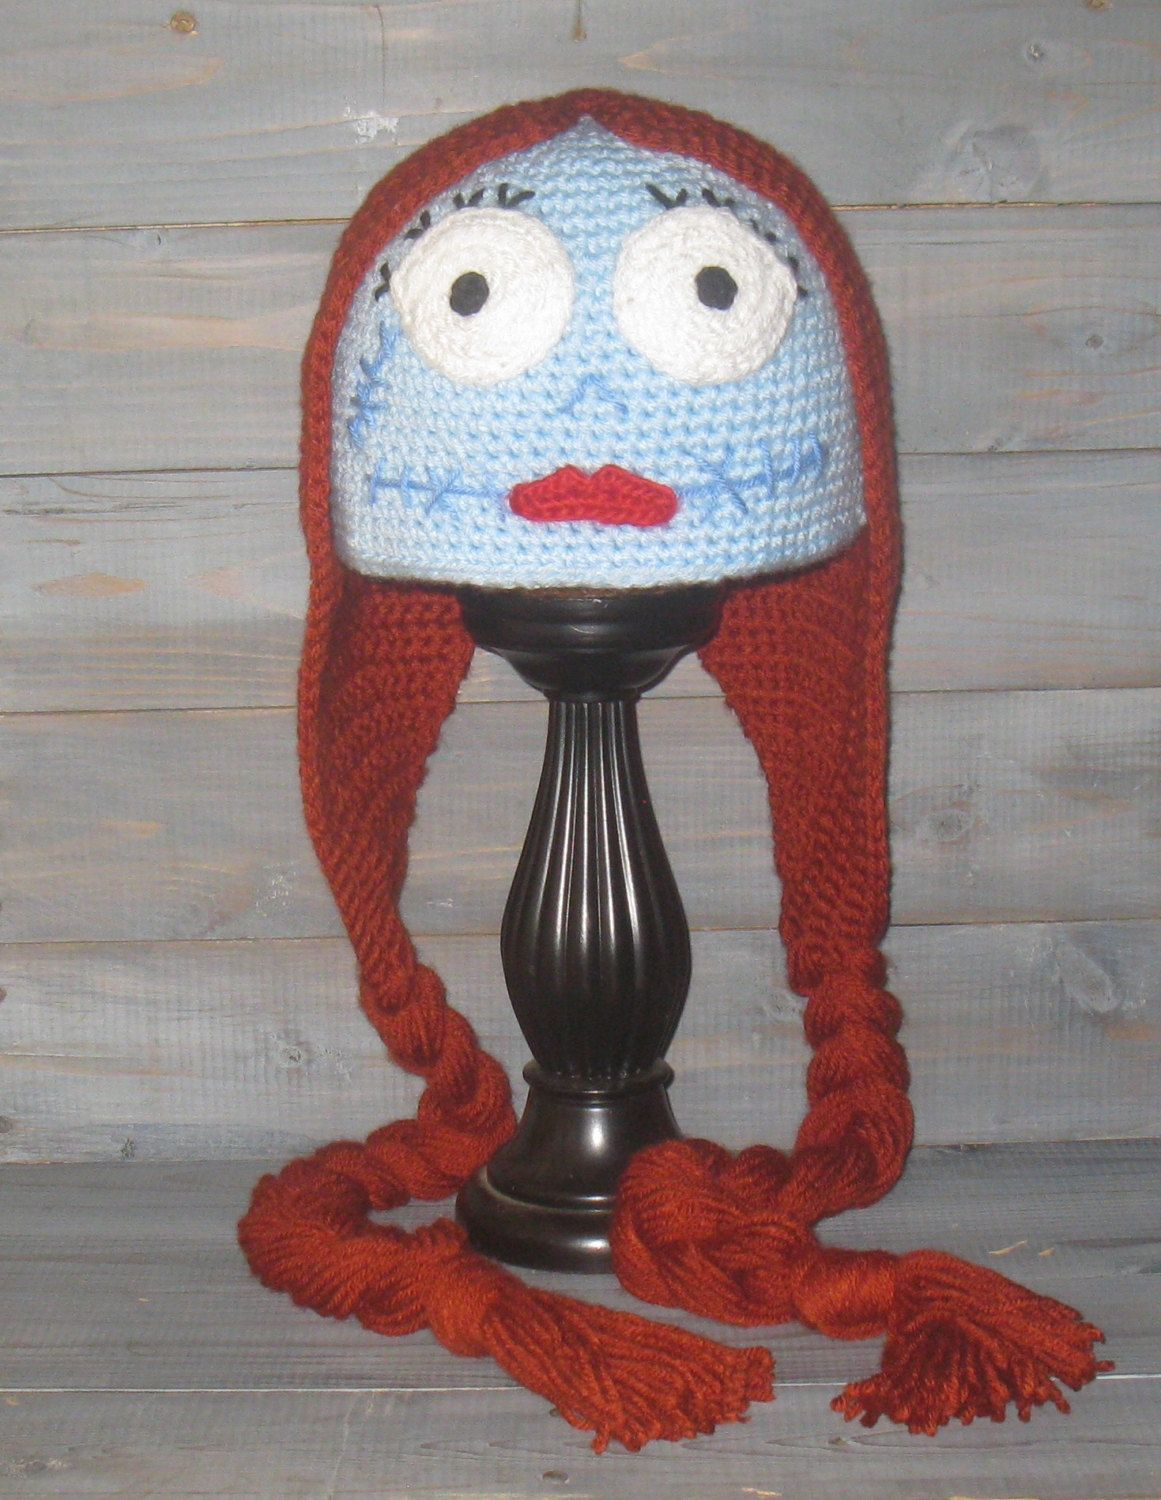 d05905ac337 Adult Sally Nightmare Before Christmas crochet hat